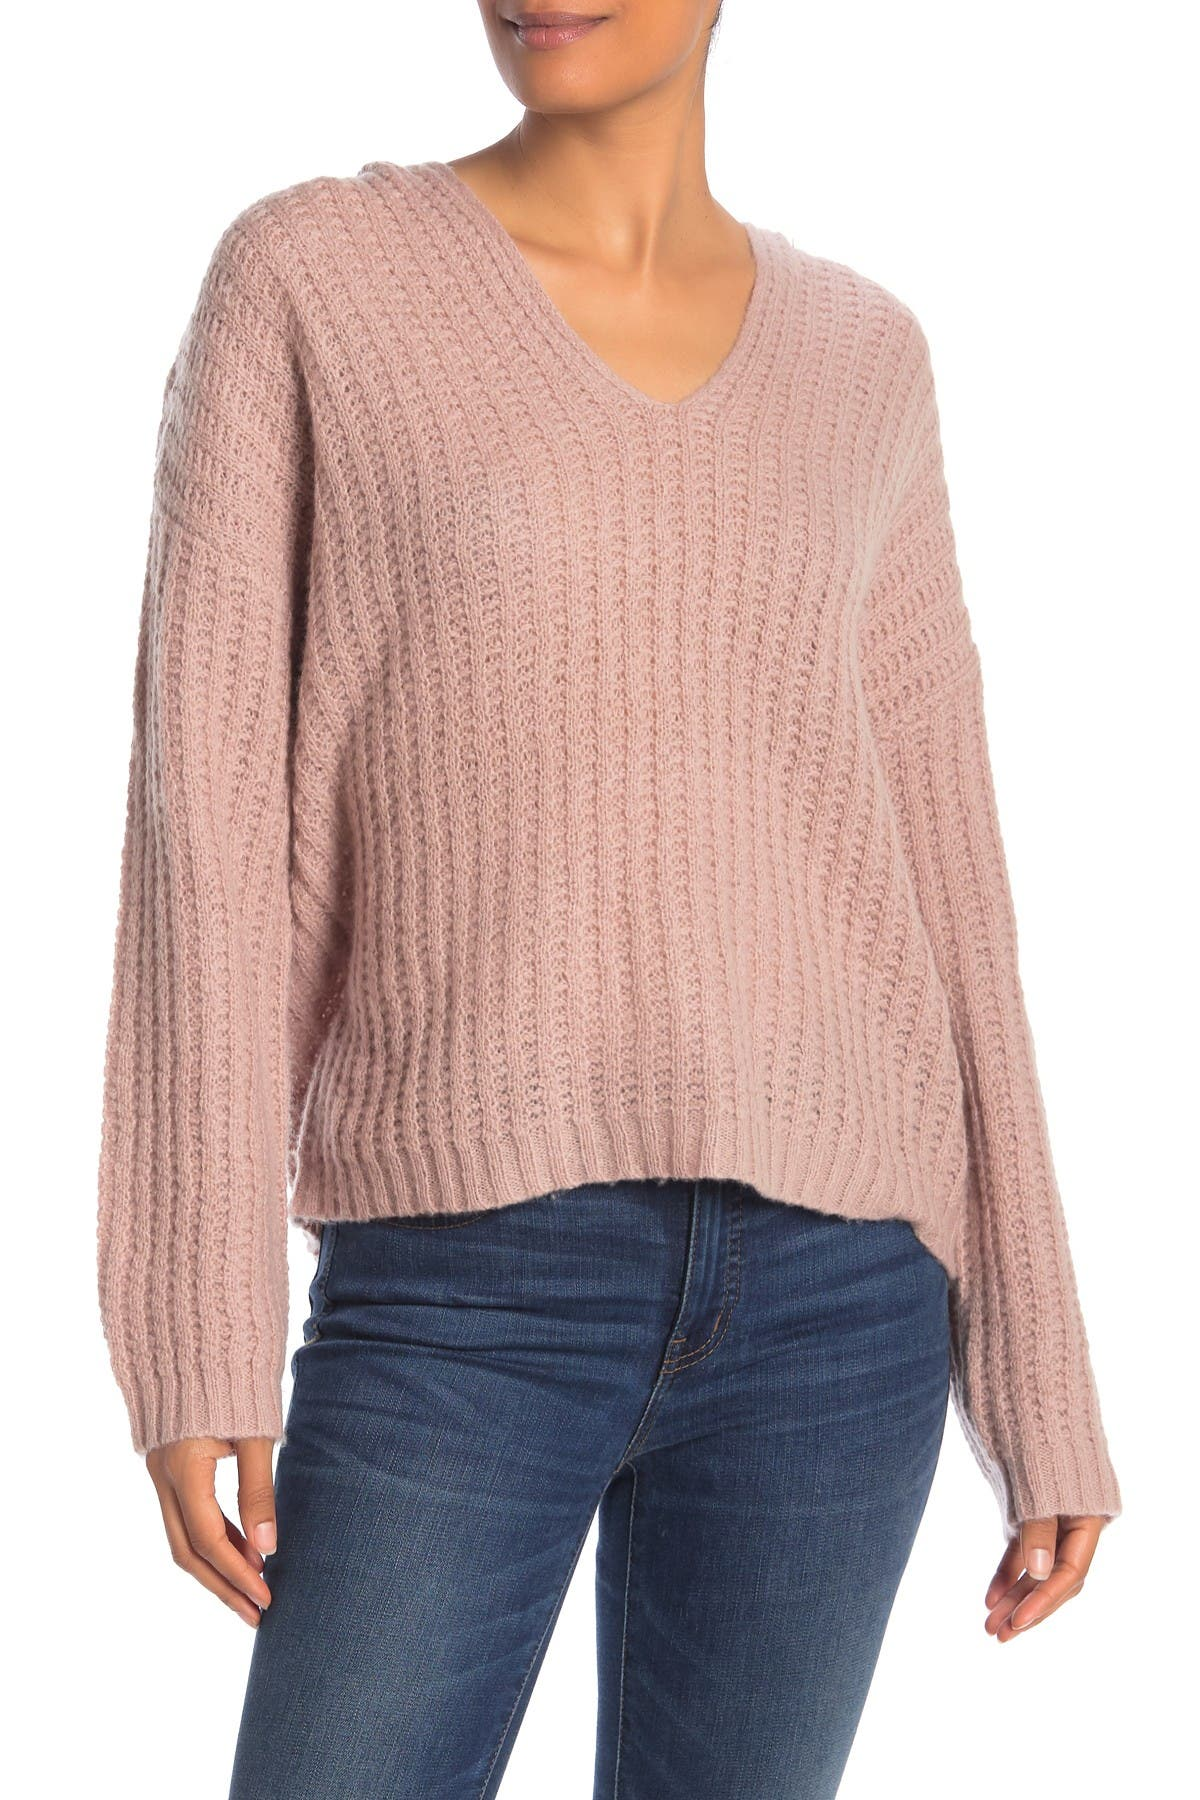 Image of 360 Cashmere Naomi Ribbed Cashmere V-Neck Sweater